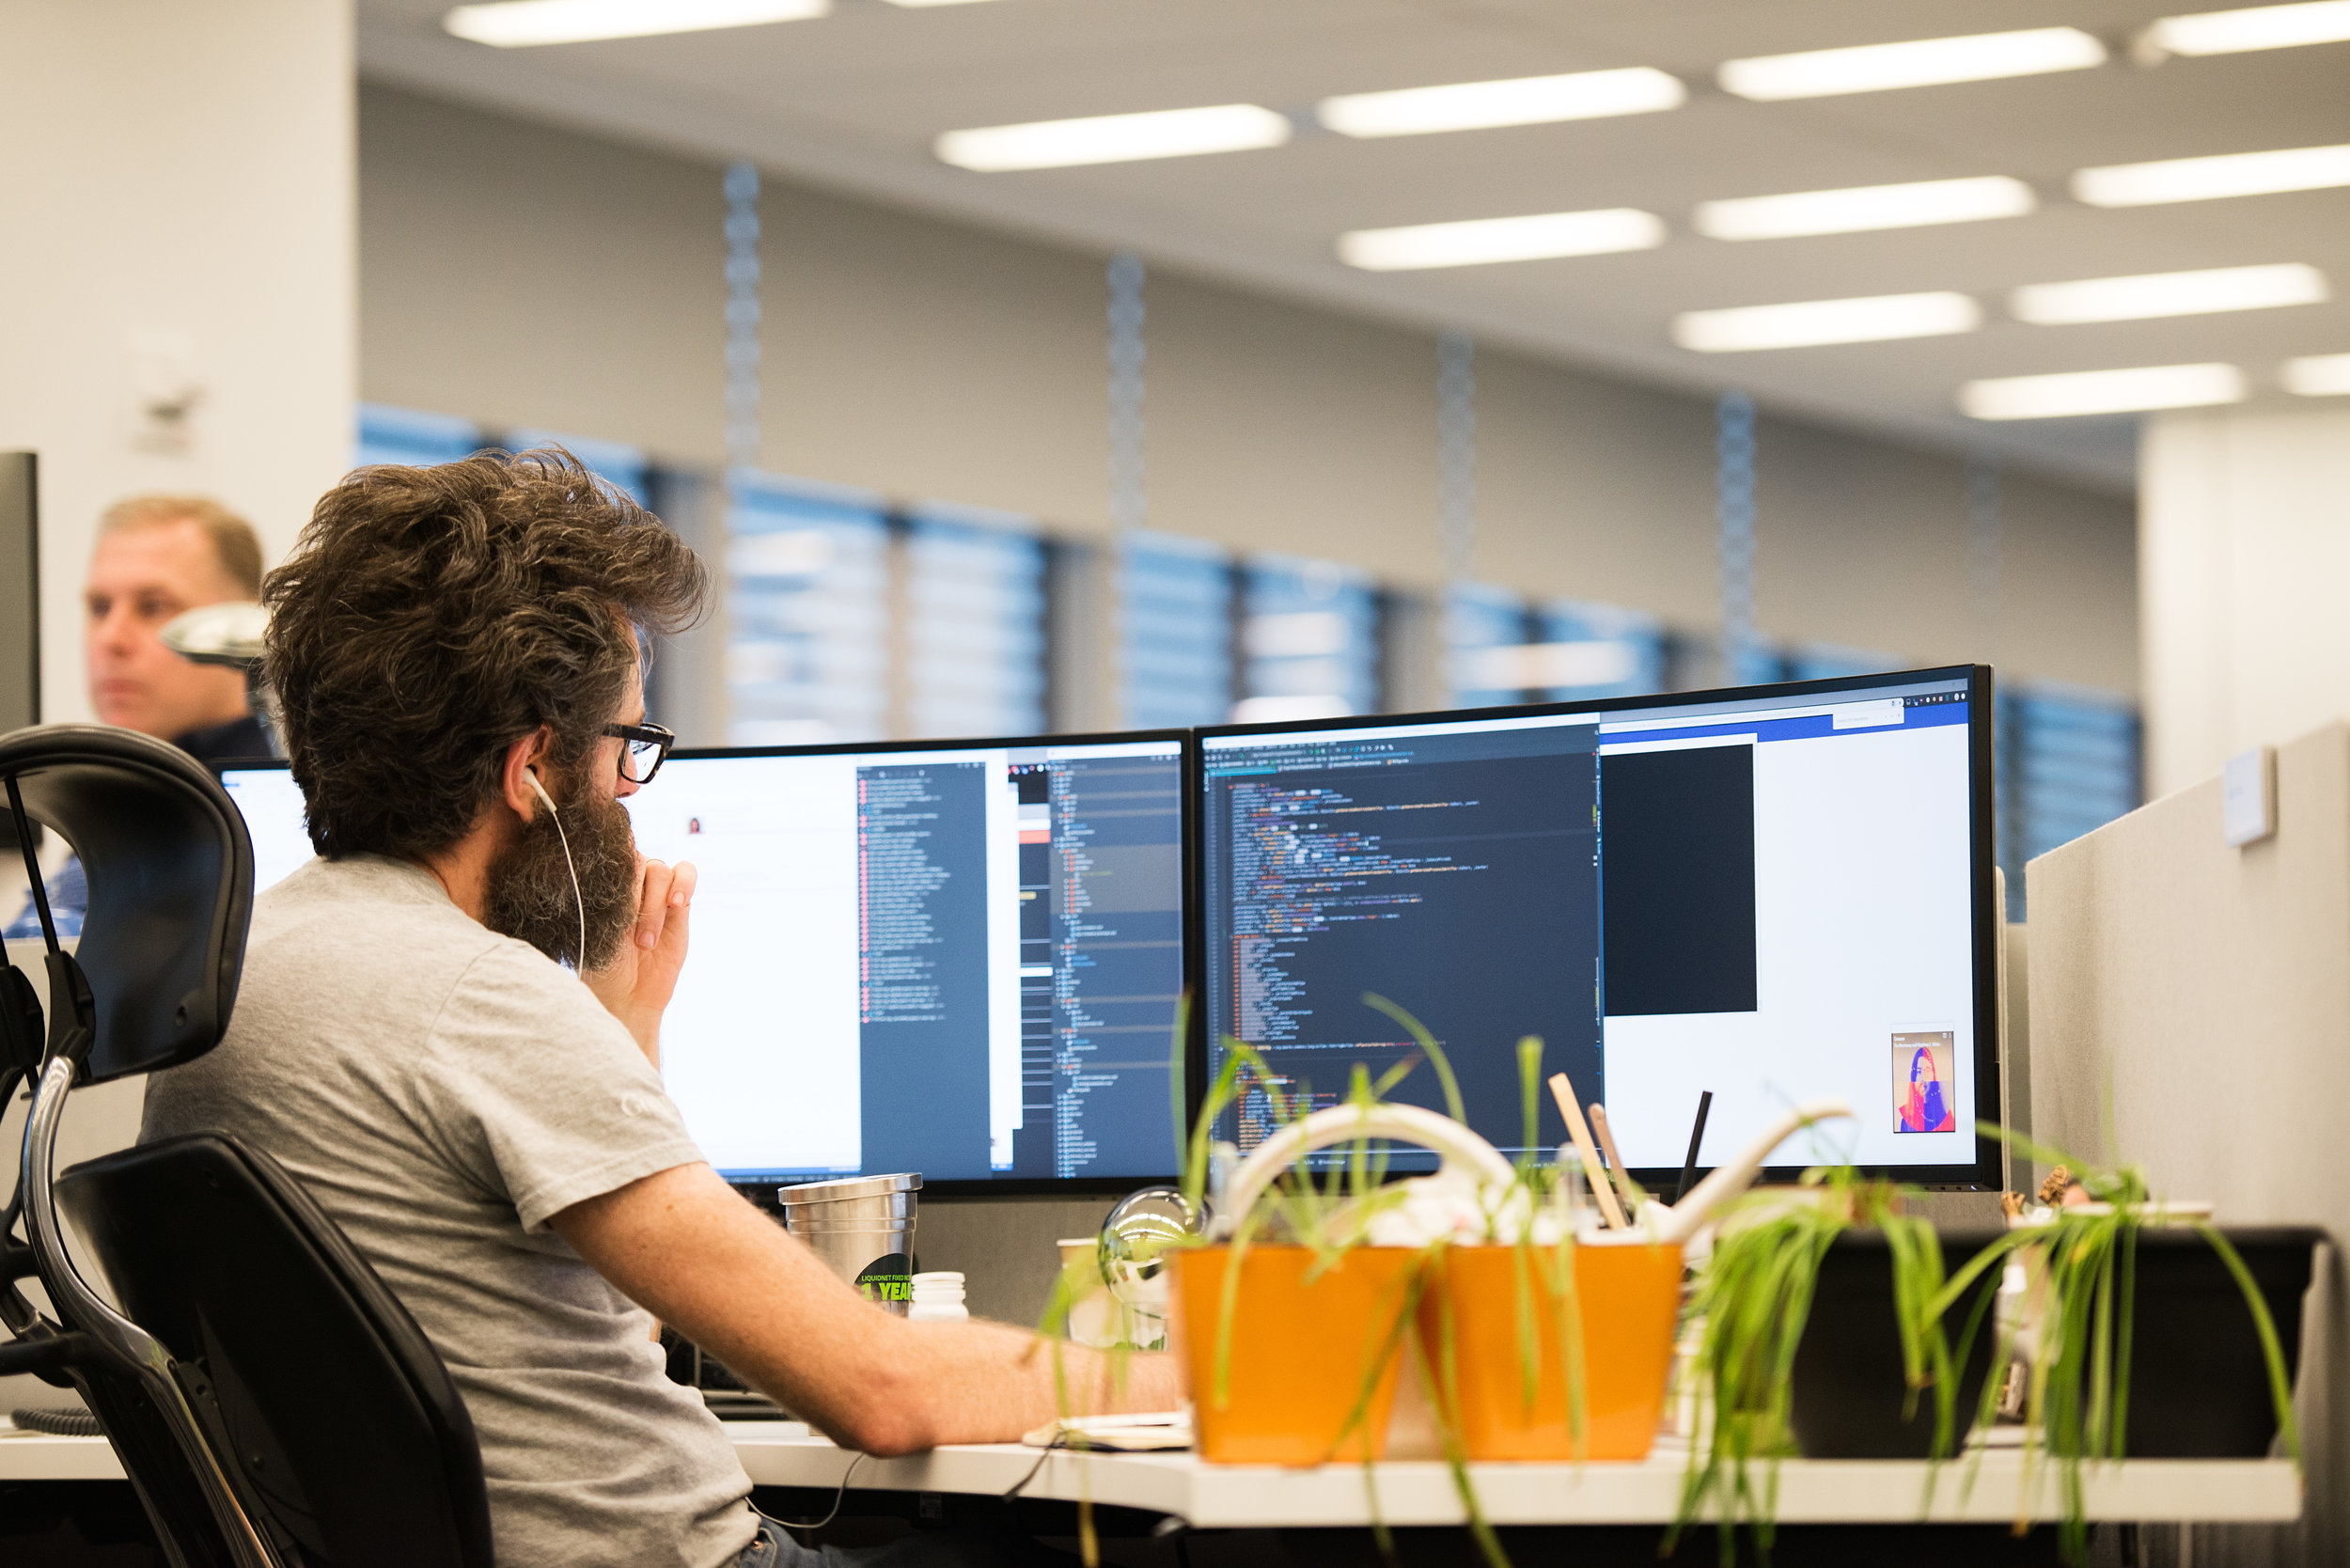 Liquidnet technologist works on market surveillance code at desk with potted plants